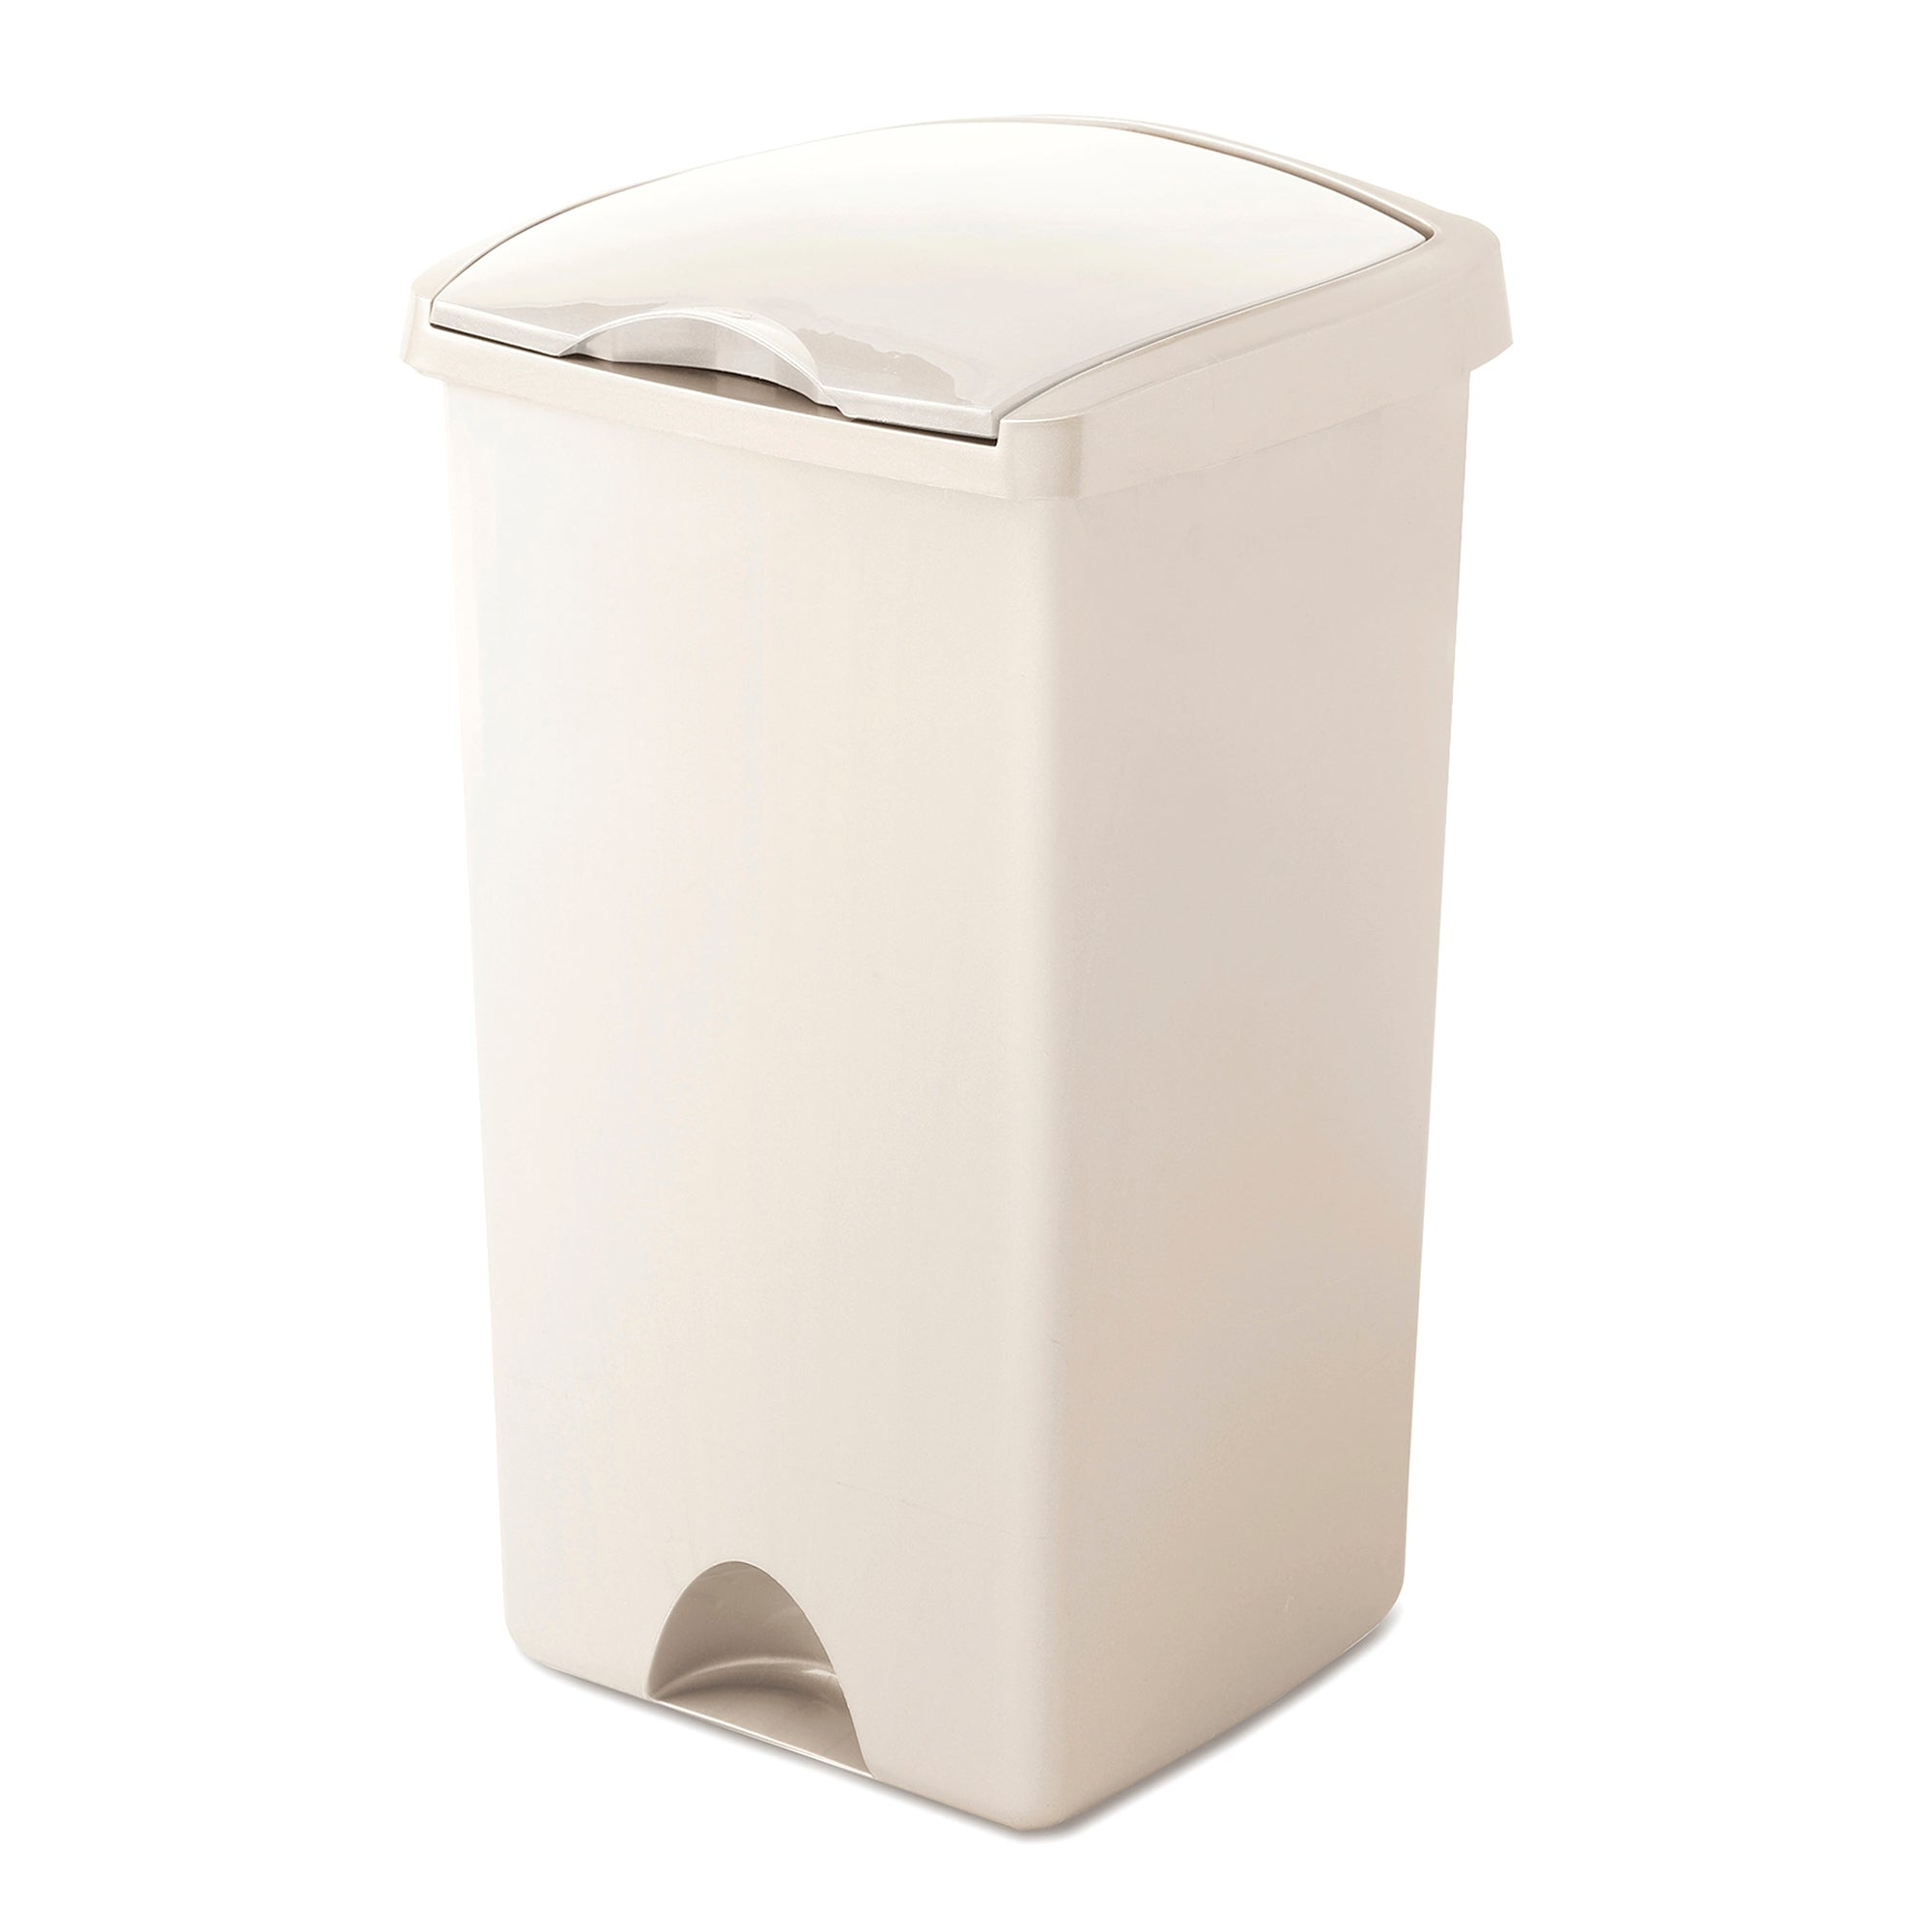 Addis Cream 48 Litre Lift Up Bin Cream